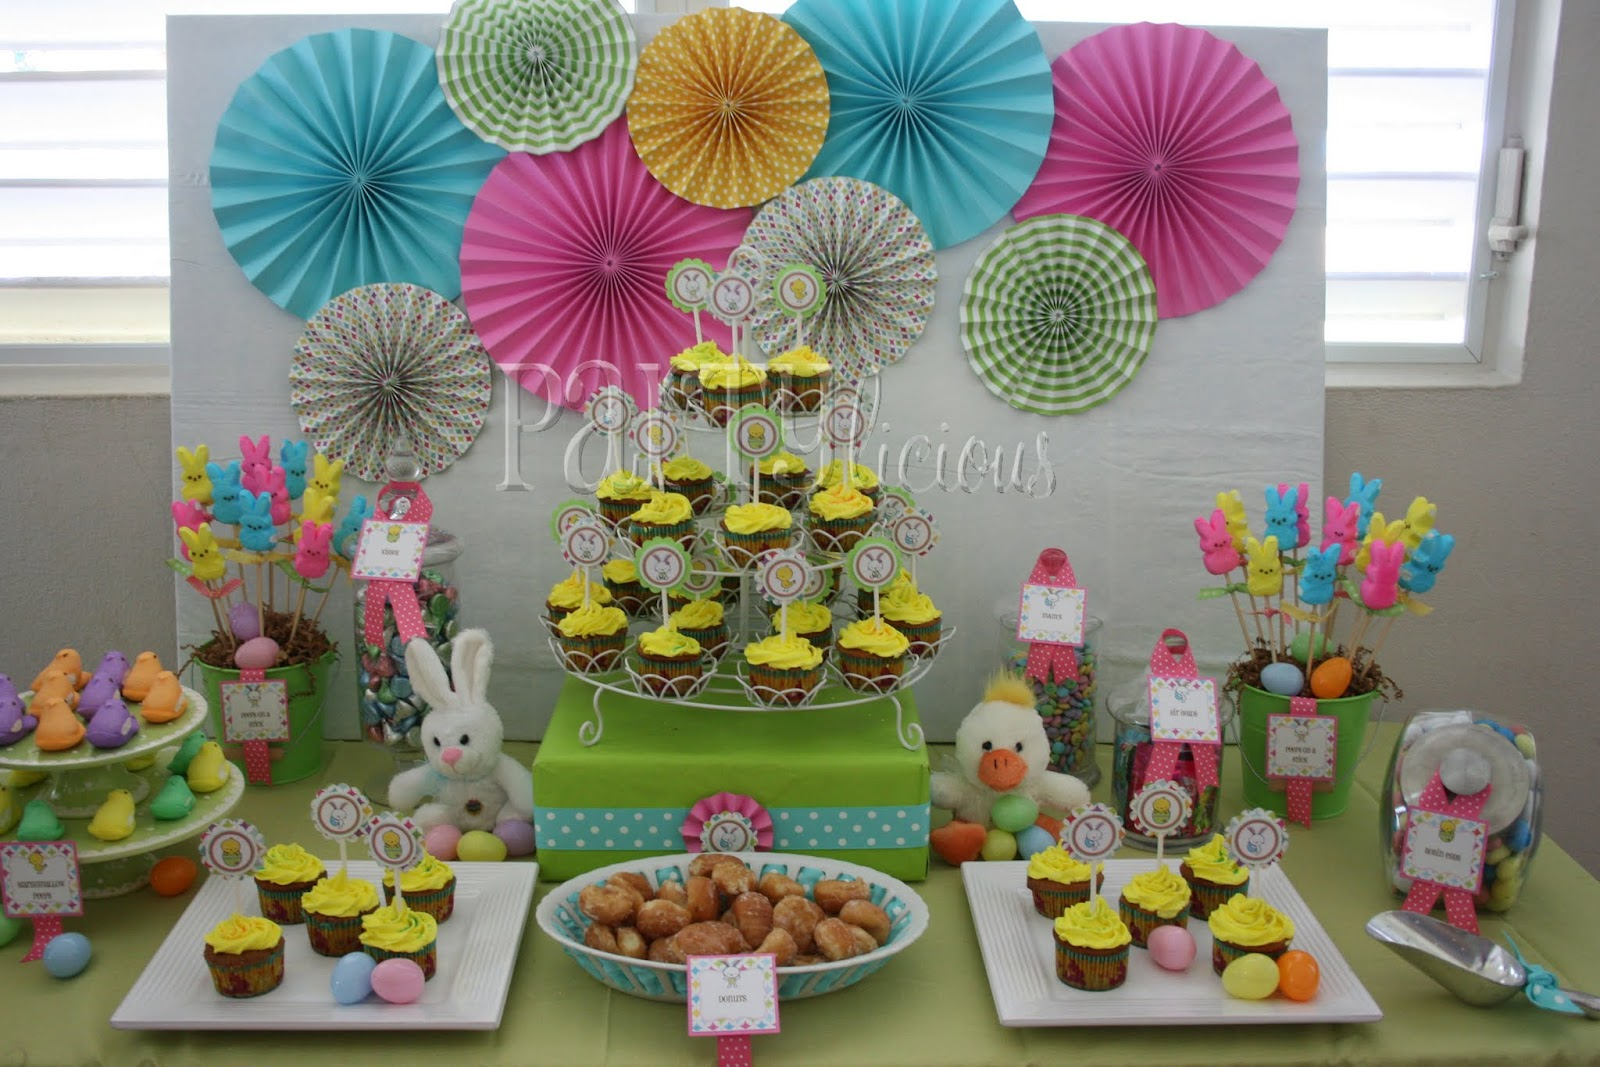 Partylicious easter egg hunt - Photo decoration ideas ...